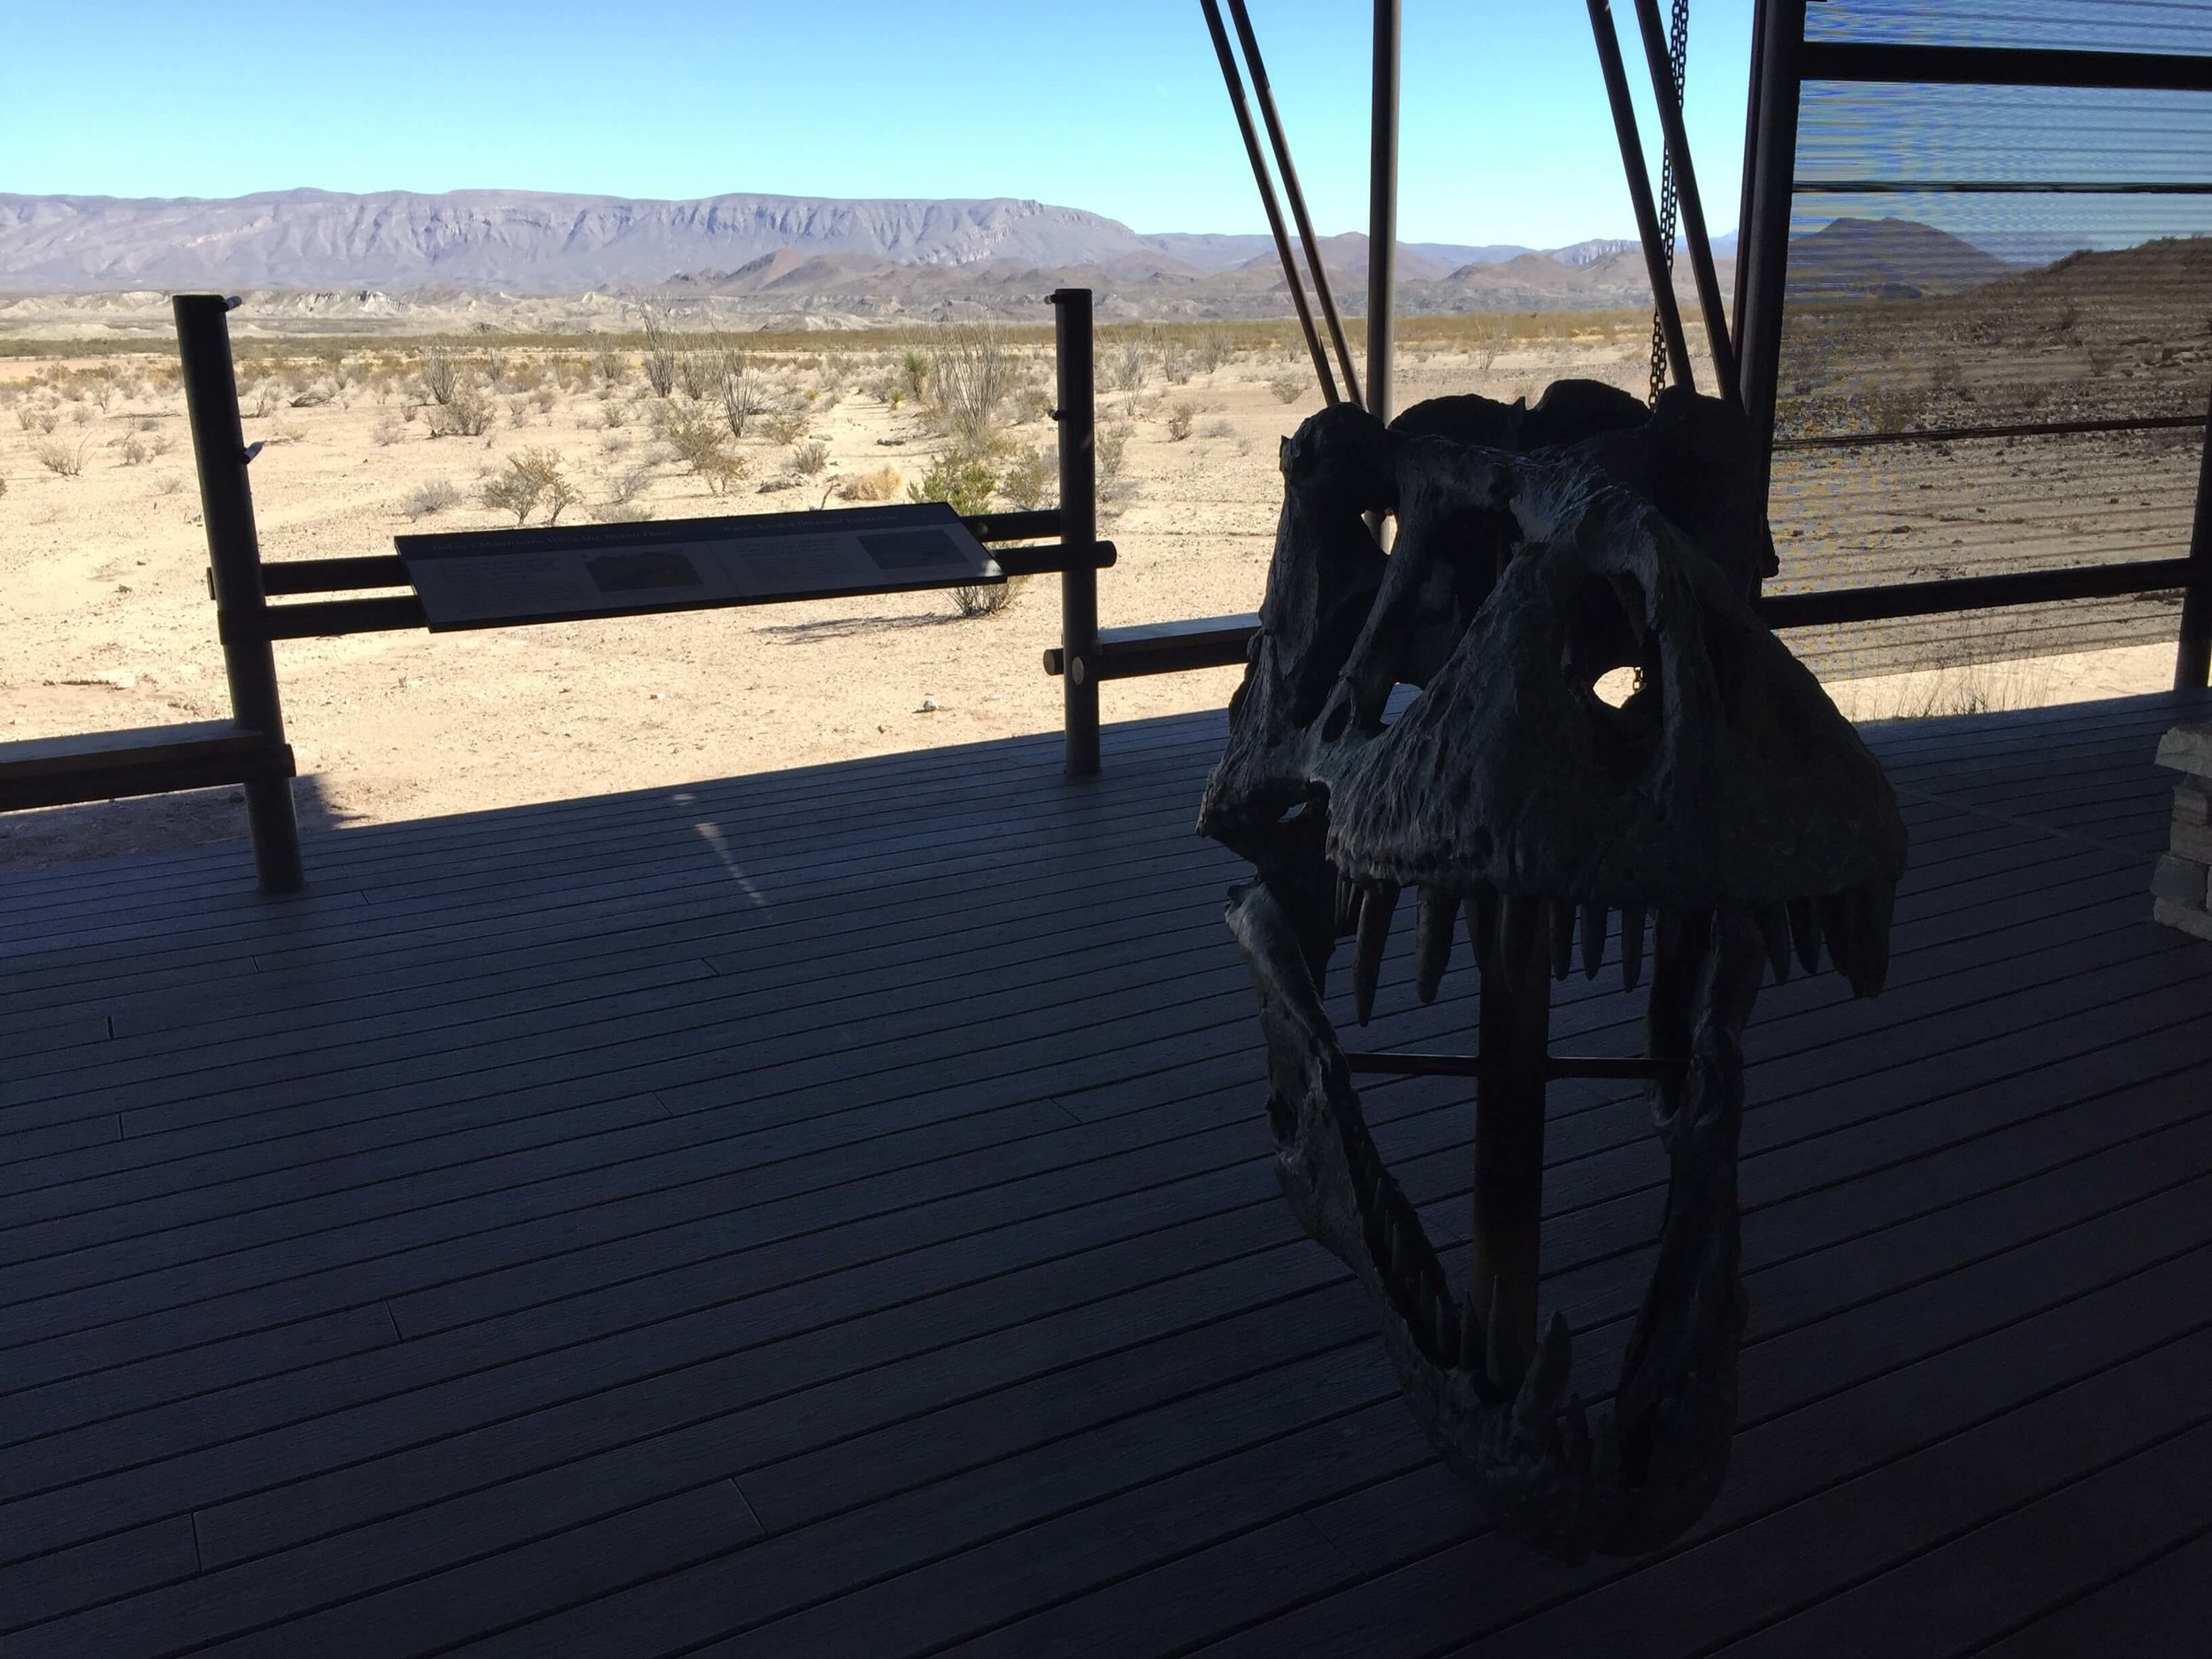 A dinosaur exhibit portraying the prehistoric history of Big Bend National Park